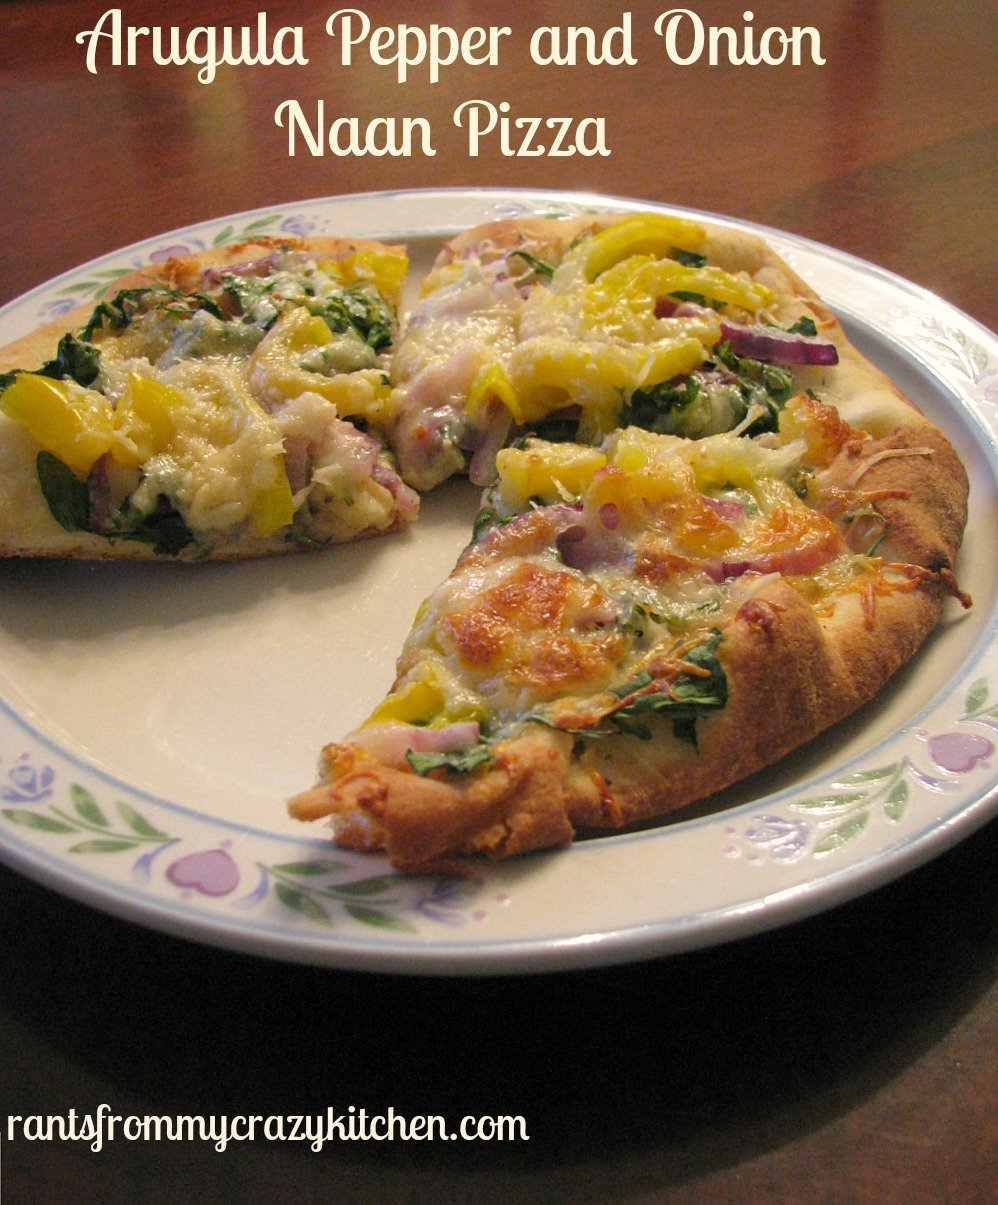 Arugula Pepper and Onion Nann Pizza